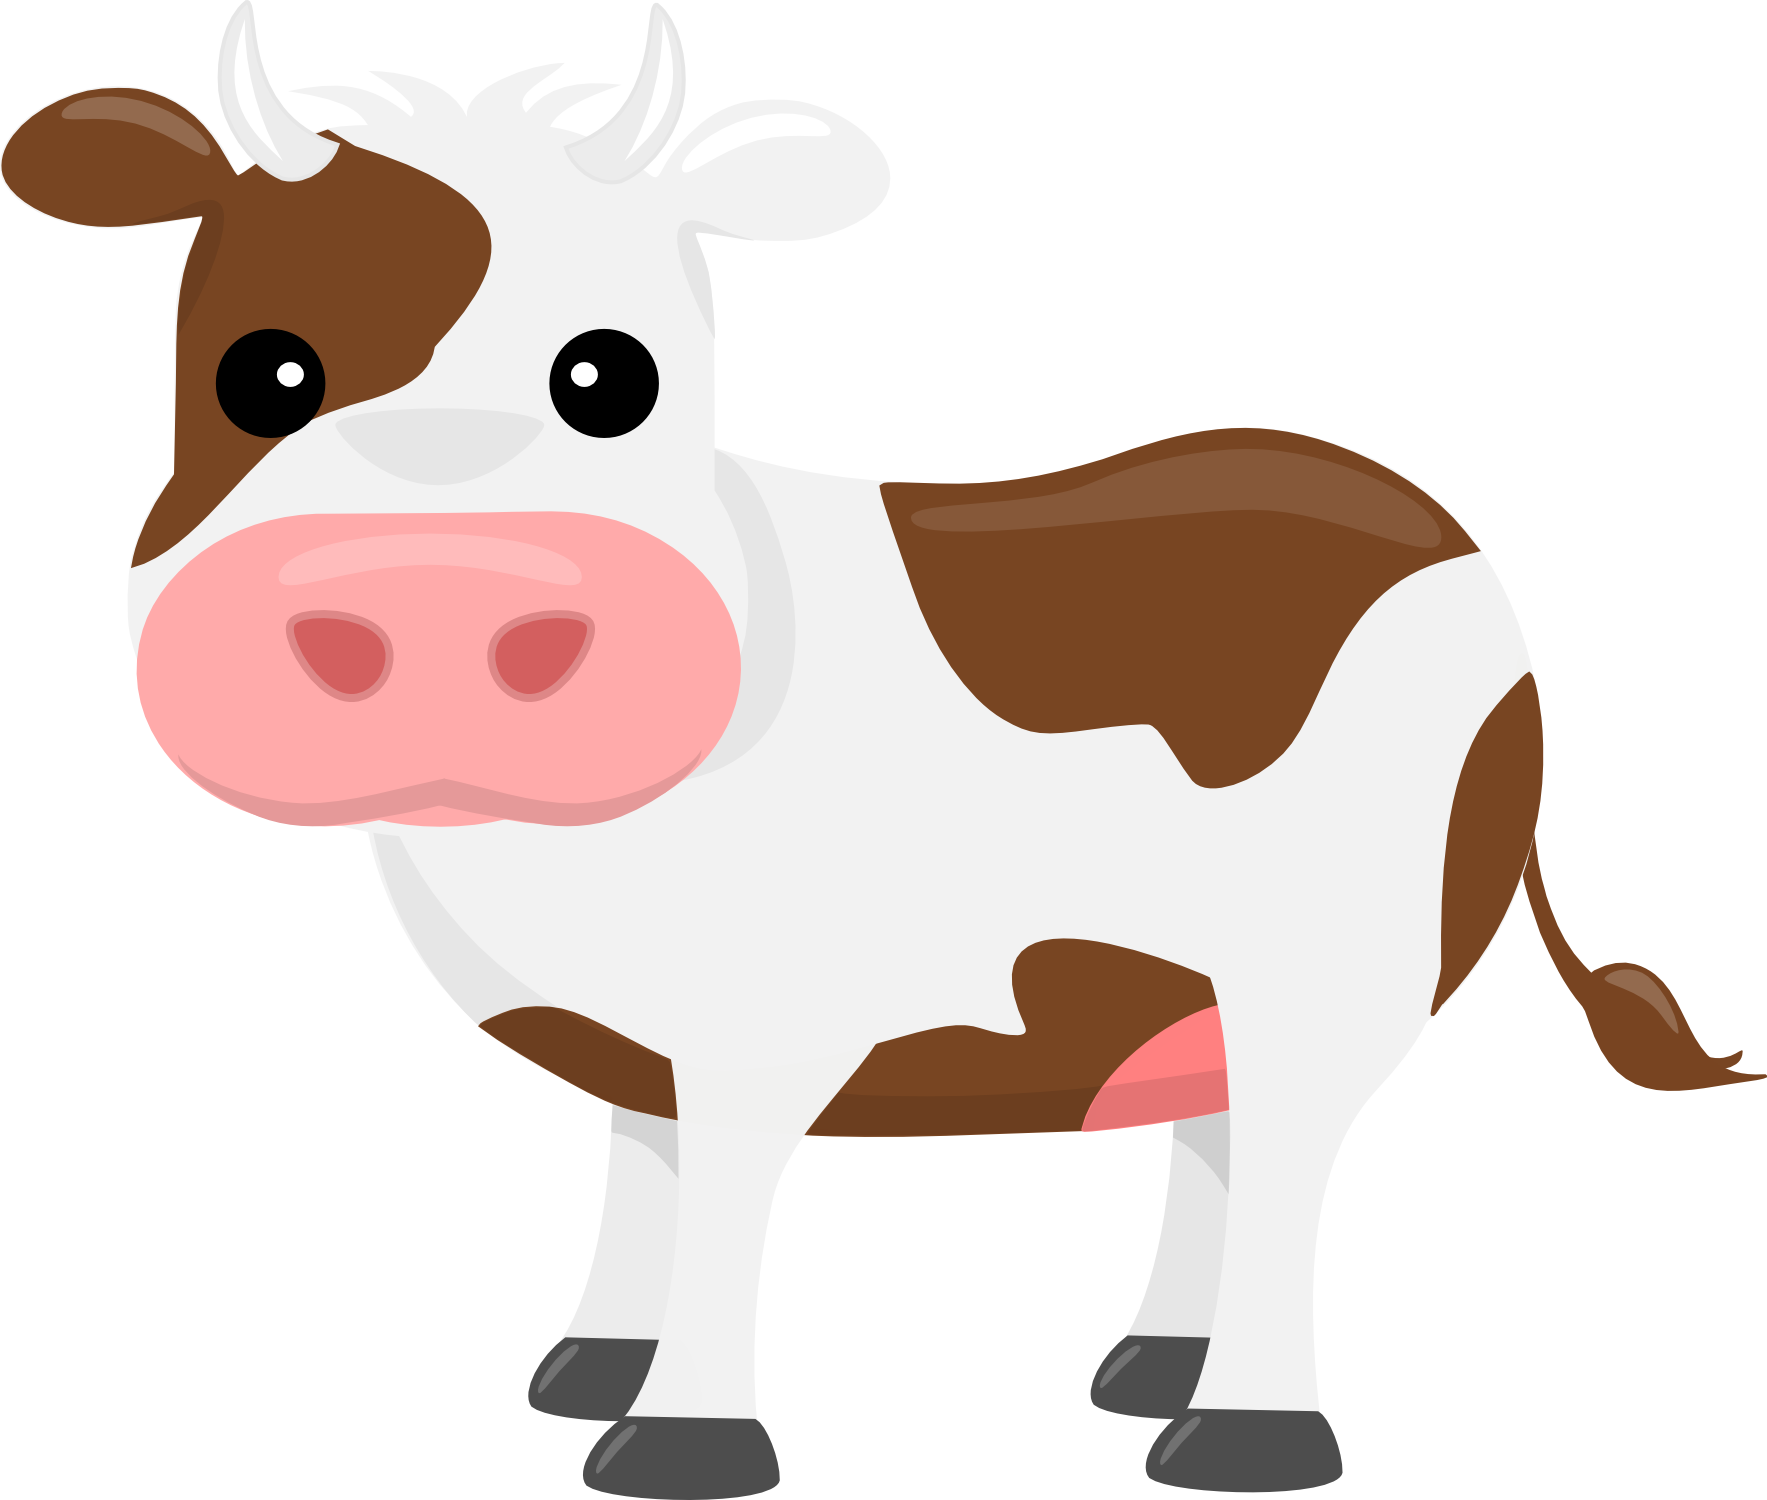 Cow clip art transparent background. Cattle clipart png pencil